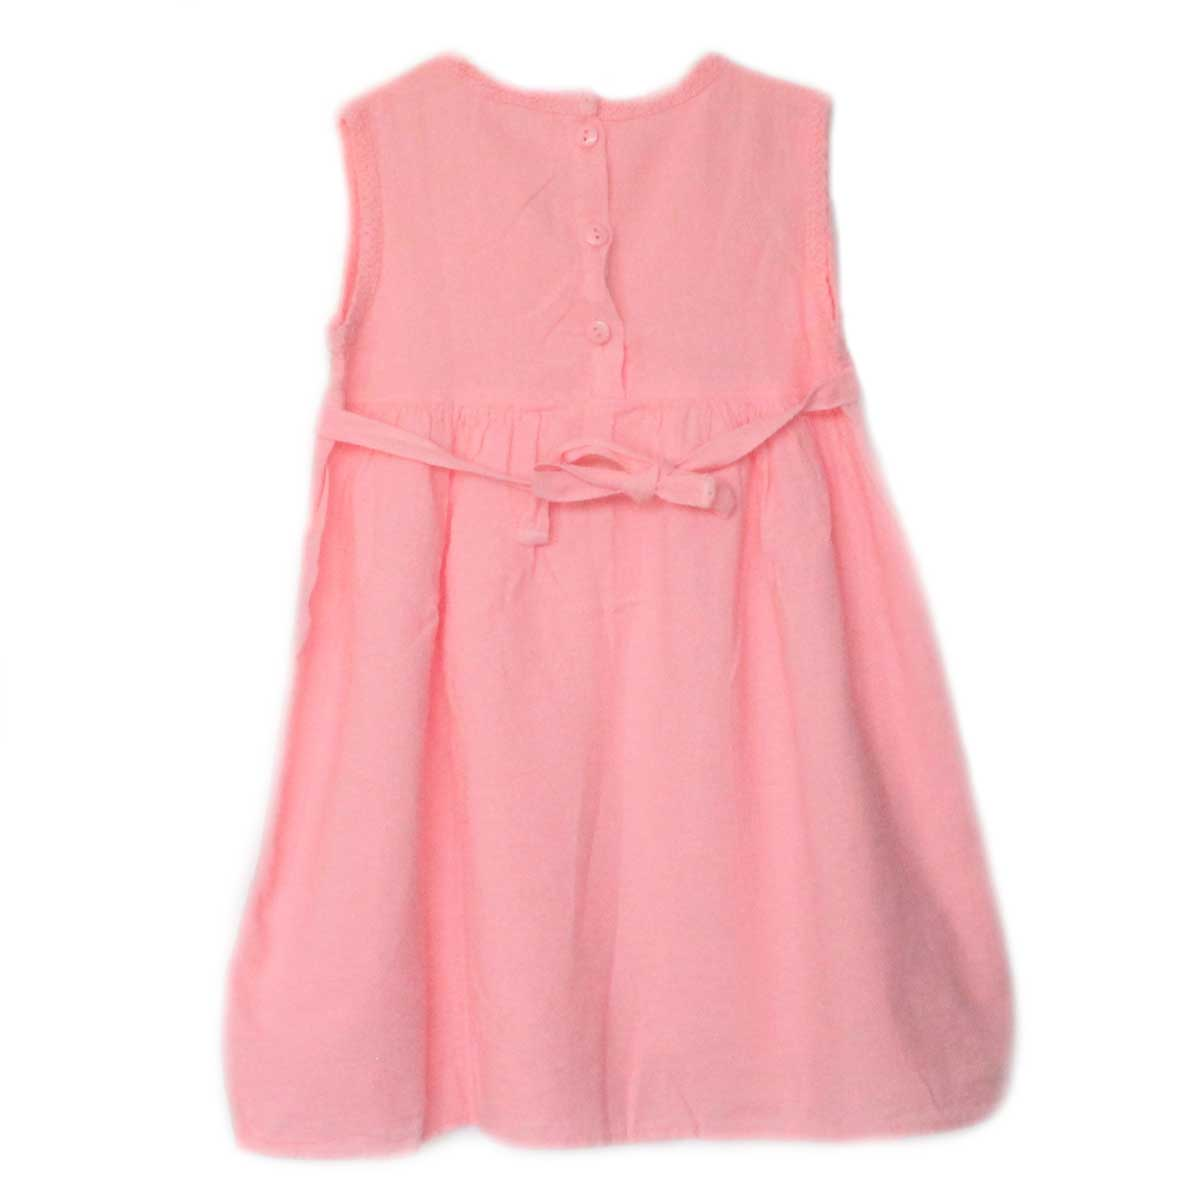 Inka-Products-Robe Sans Manches Fille Rose-En Coton Broderie Péruvienne-2